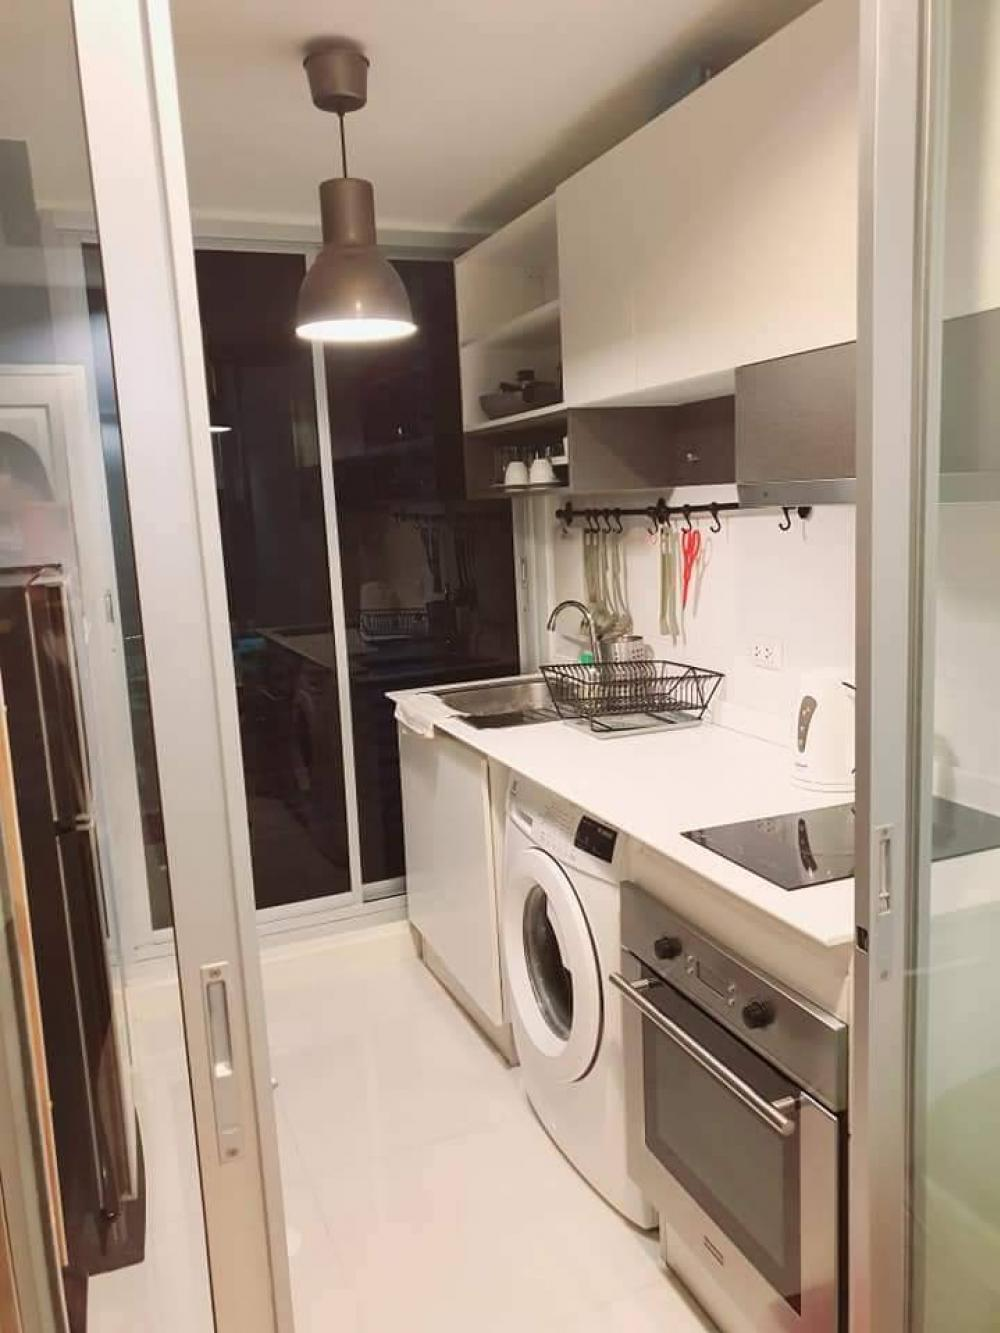 For RentCondoRatchadapisek, Huaikwang, Suttisan : Condo for rent, The Kris Ratchada 17, beautiful room, good price 💥 near MRT Sutthisan, MRT Cultural Center, fully furnished, complete electrical appliances. Lovely room, you must like it. Building 7, 2nd floor, size 32 sq m. Rental price: 10,000 baht.